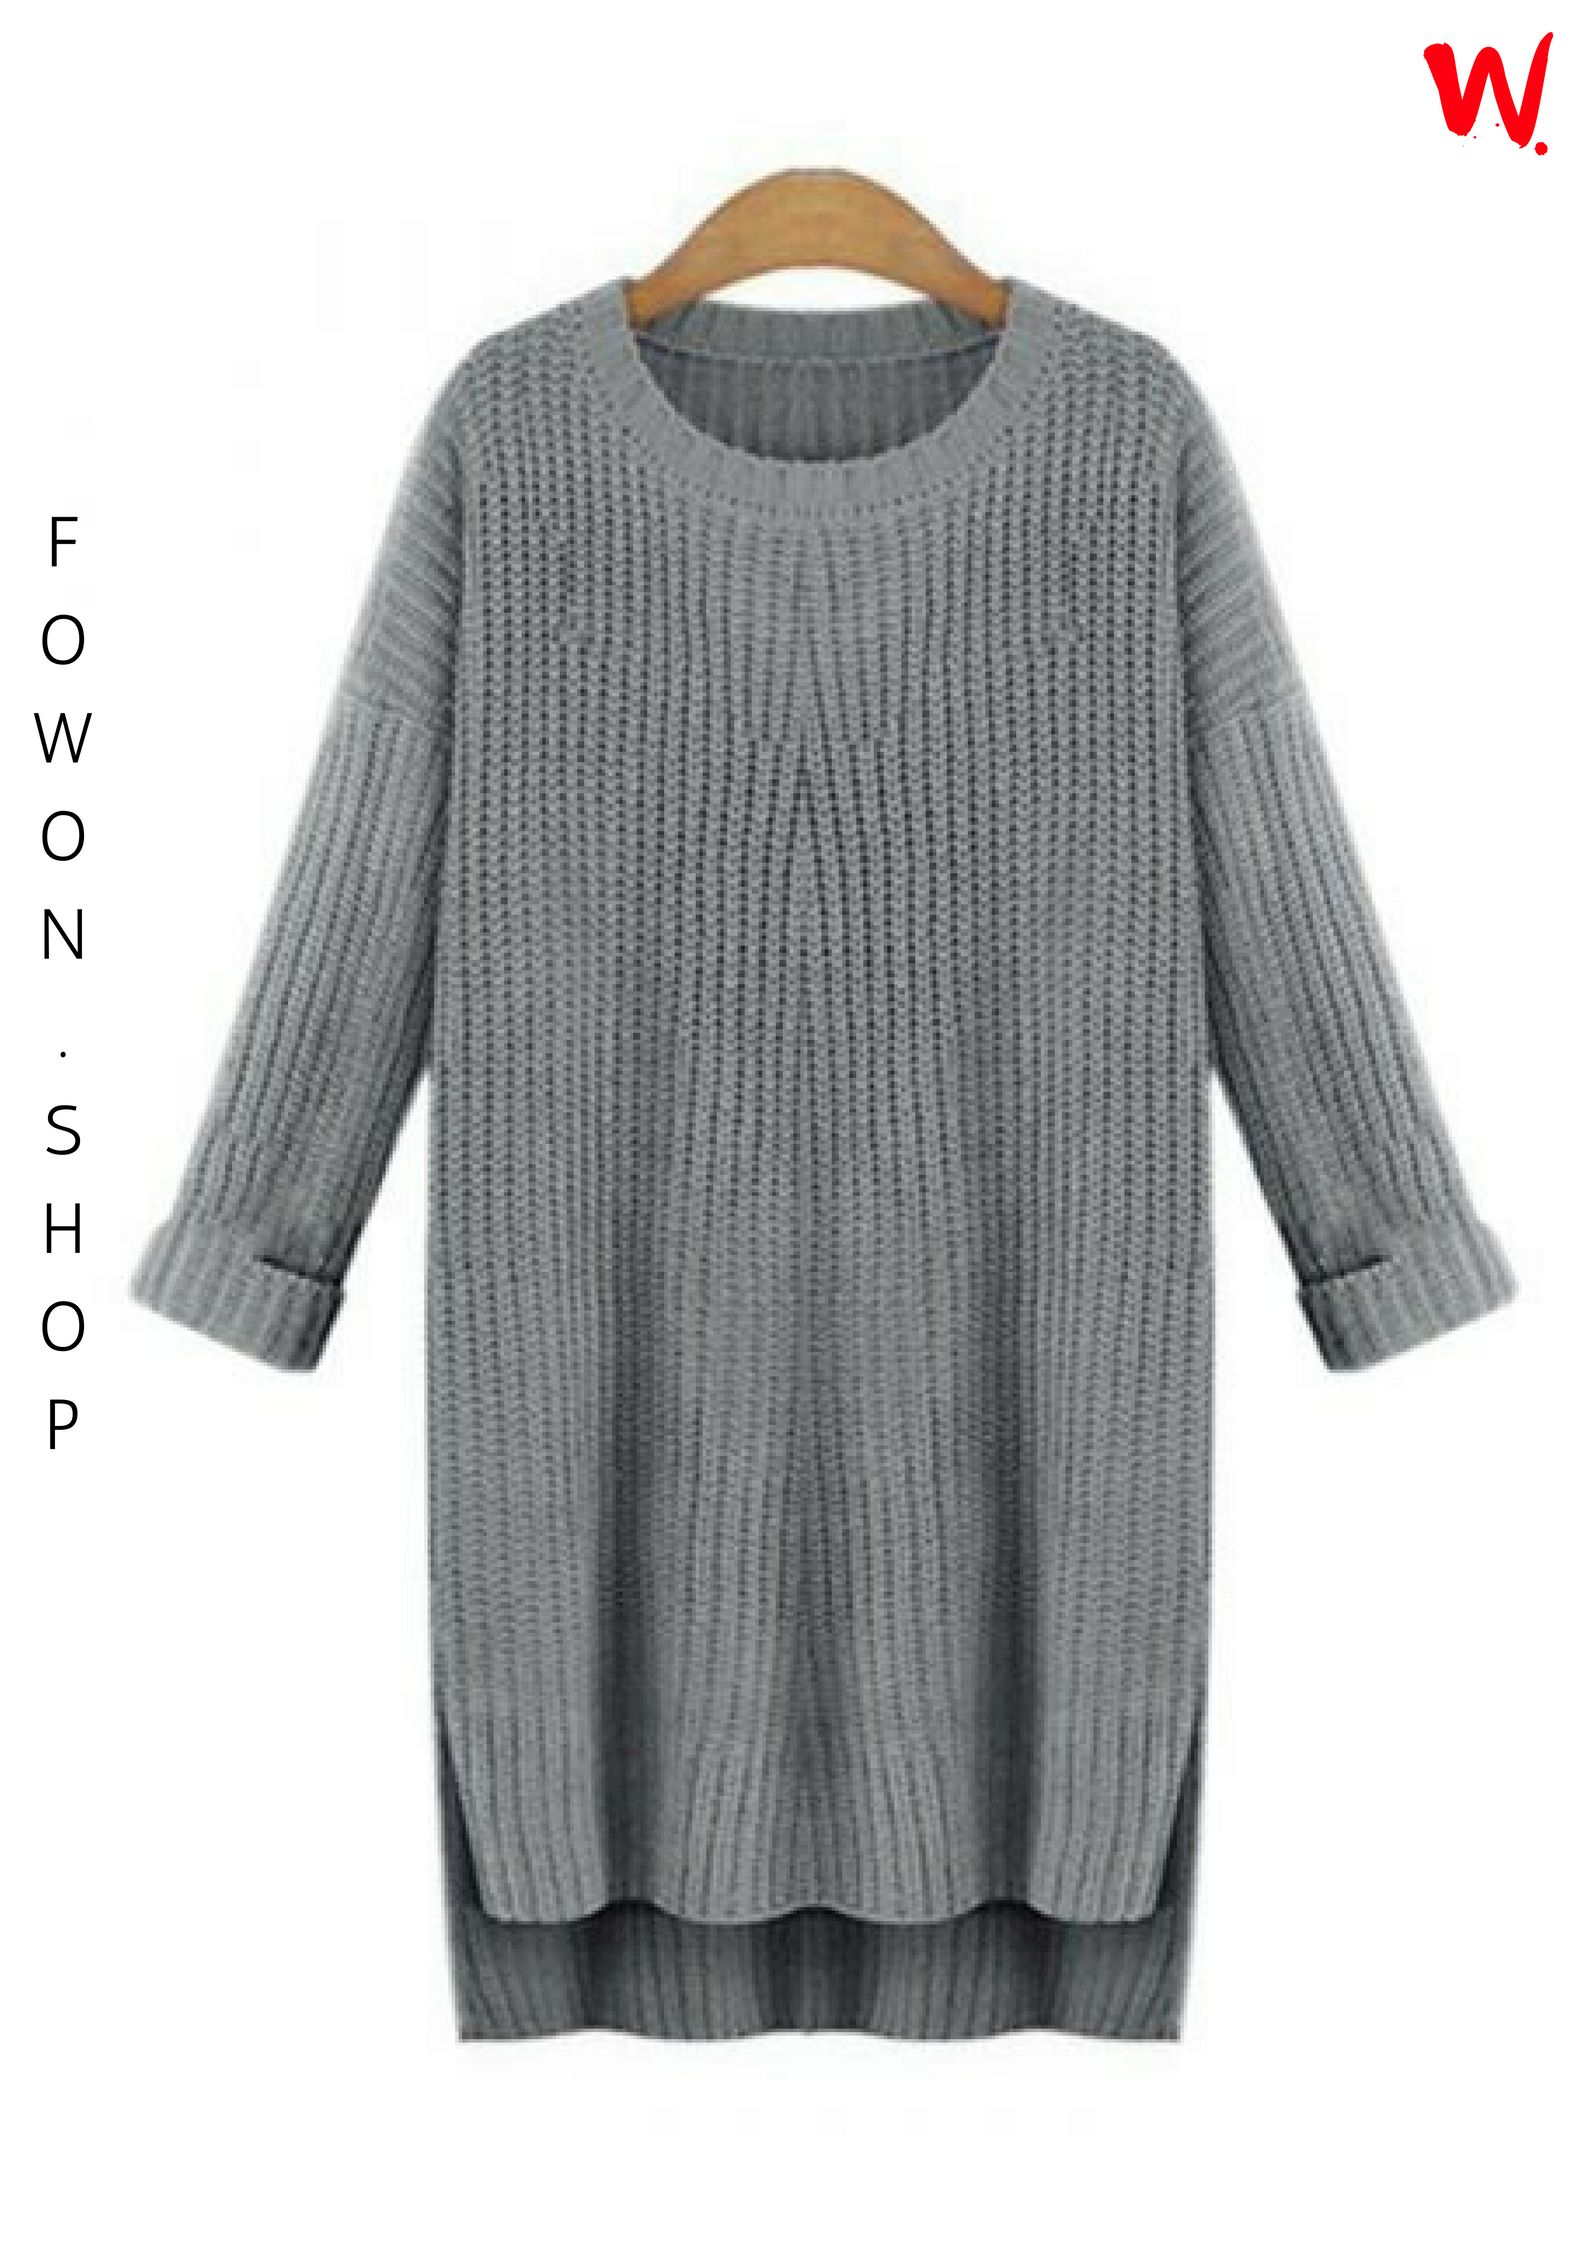 Shop this chic long sleeve pullover from fowonshop fowon